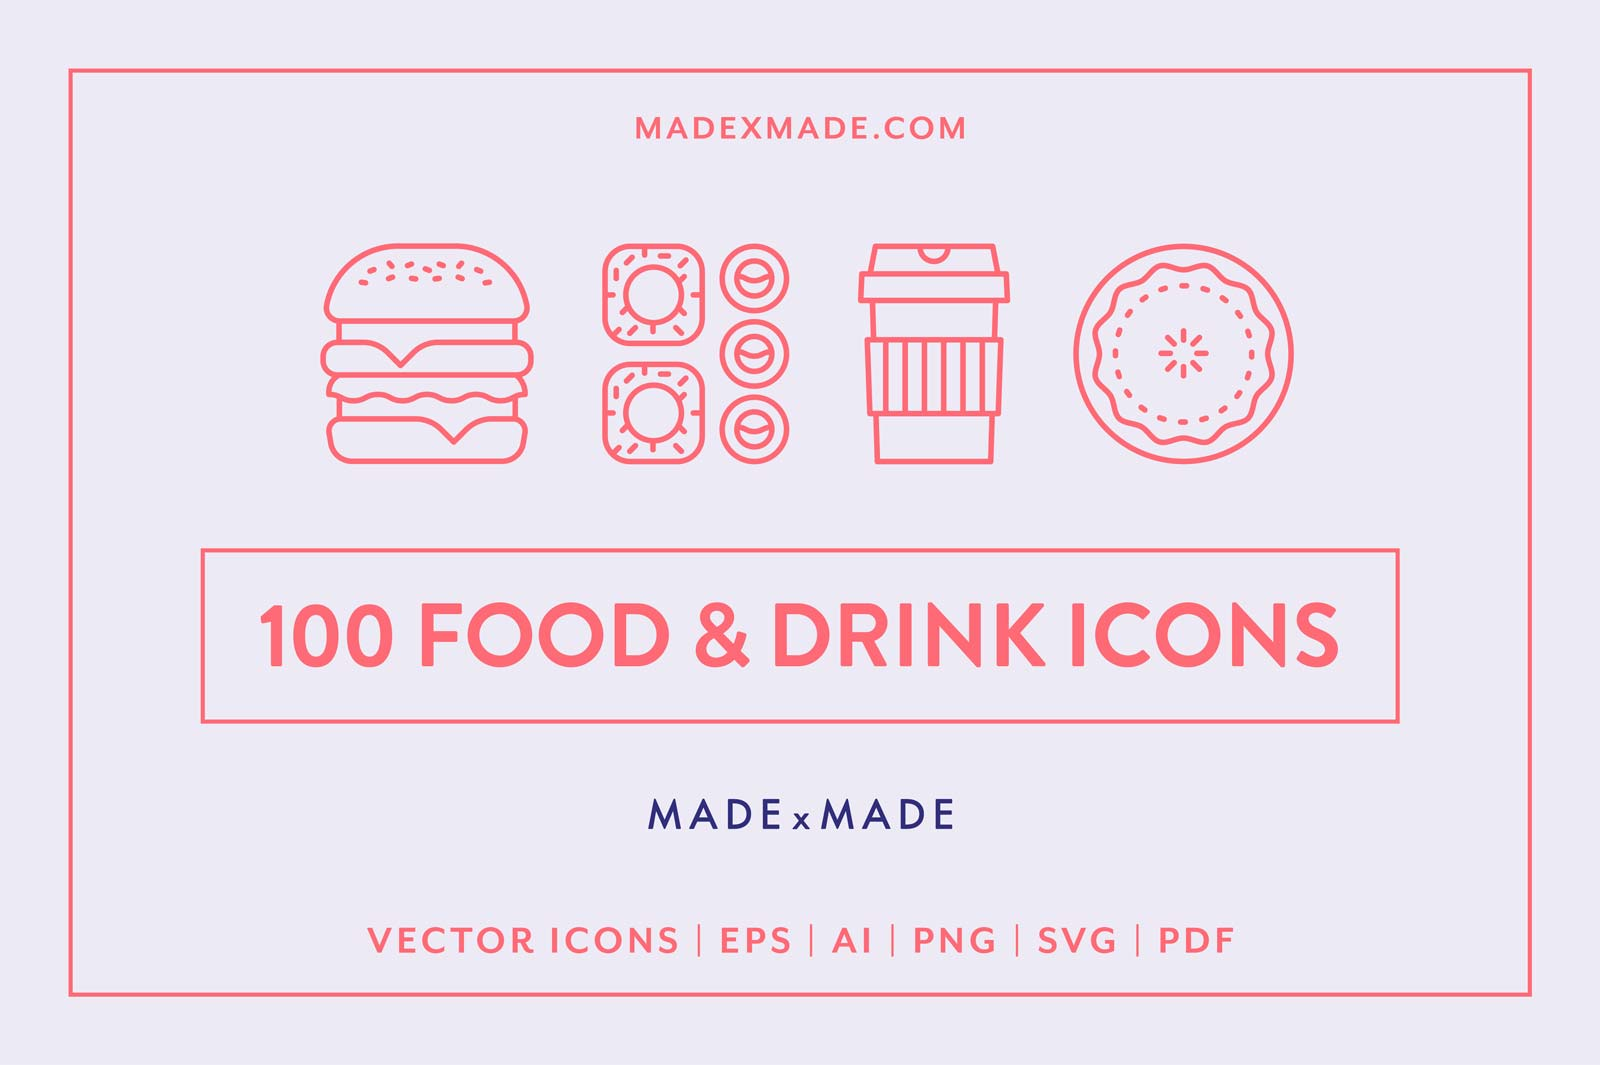 made x made icons food drink